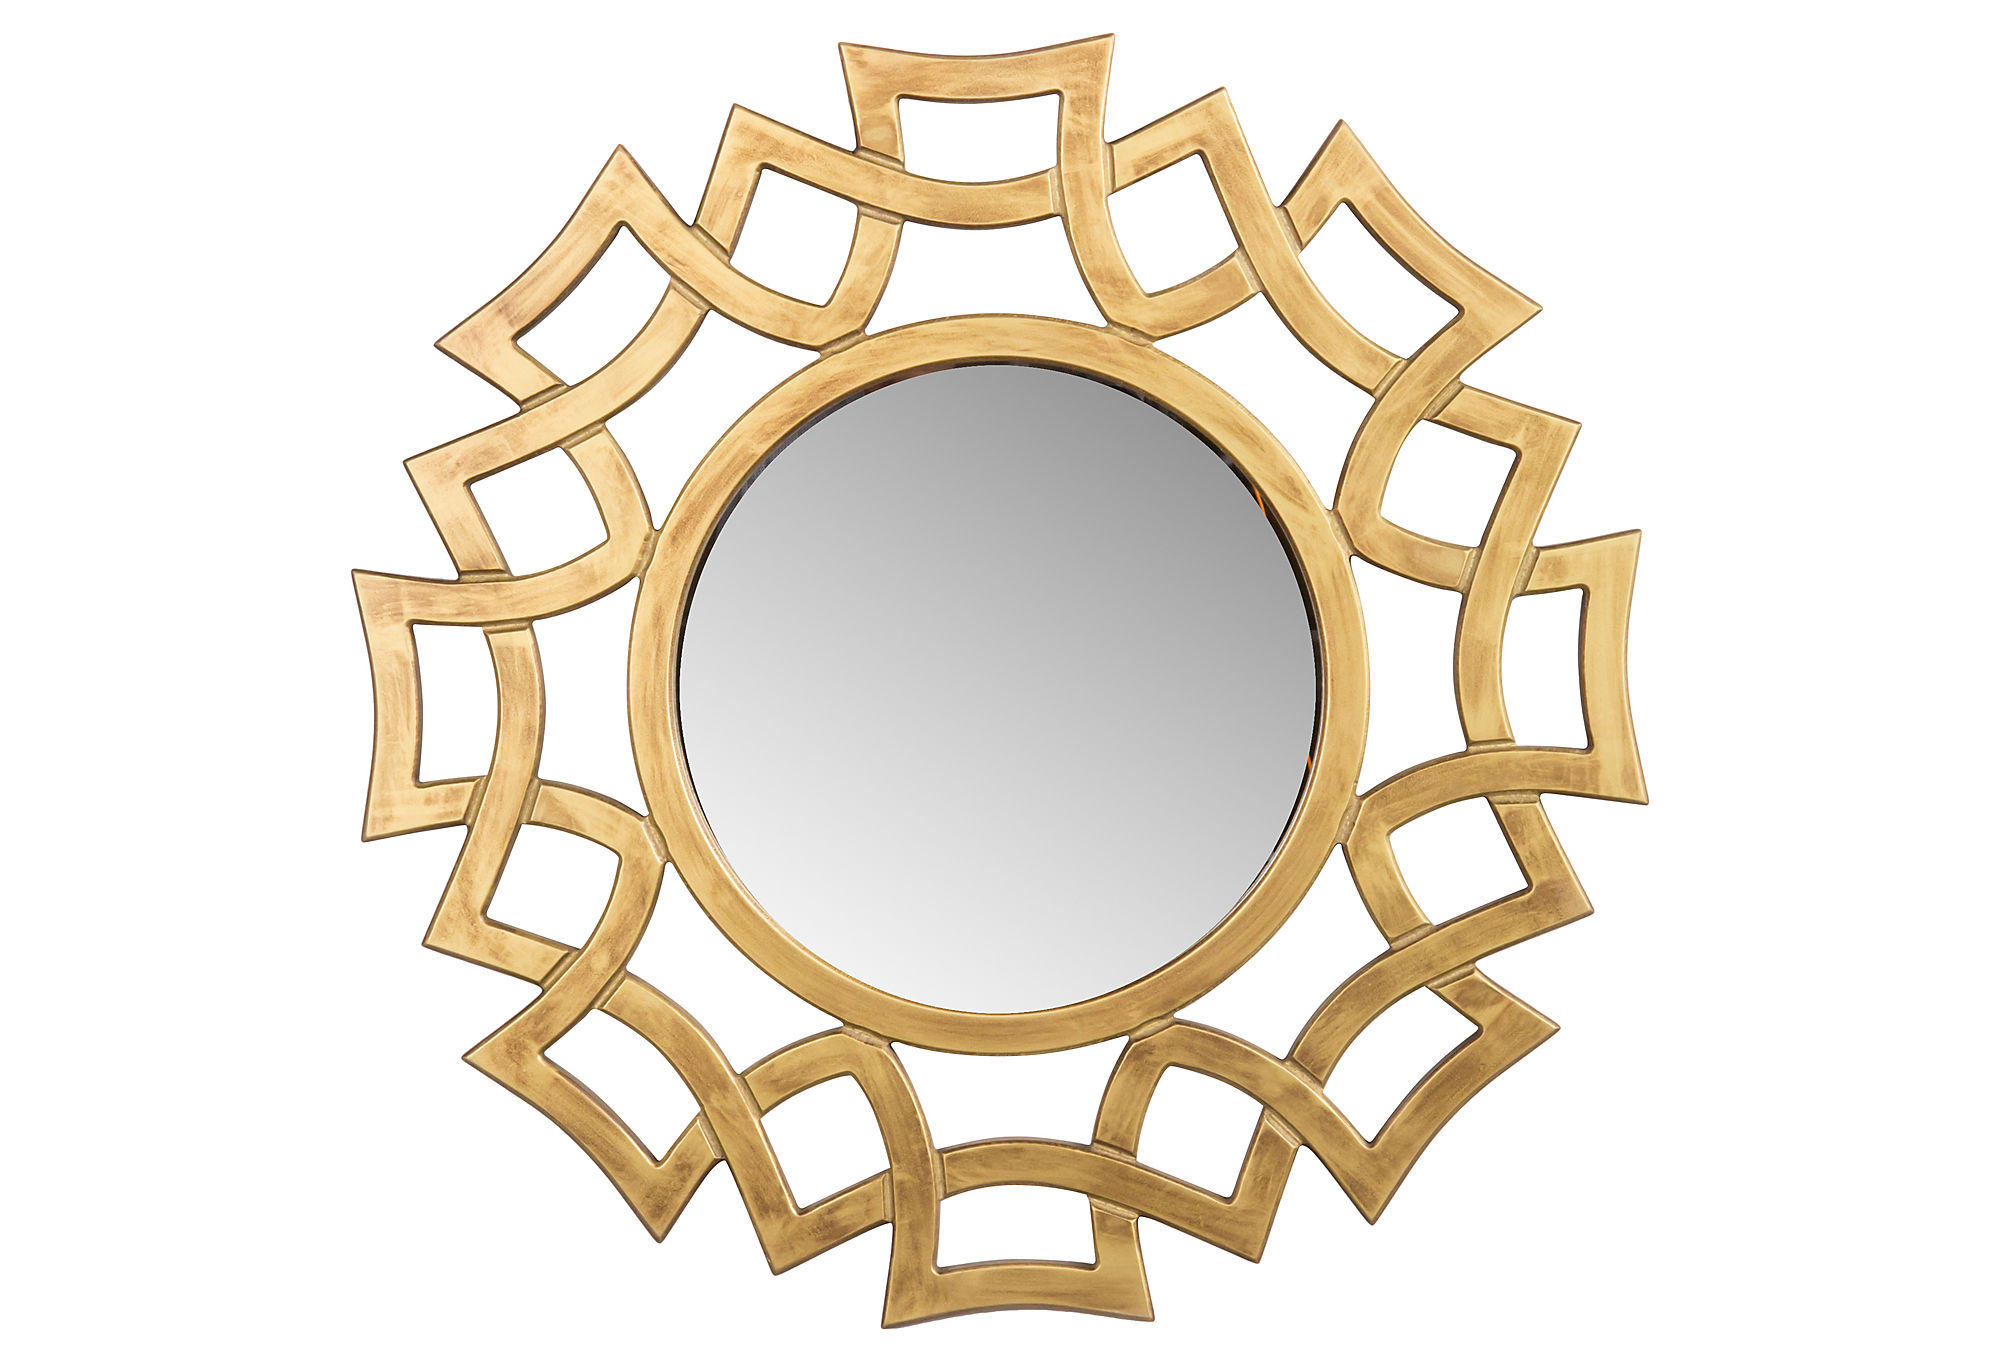 Mirrors stella wall mirror gold small from one kings lane for Small gold mirror